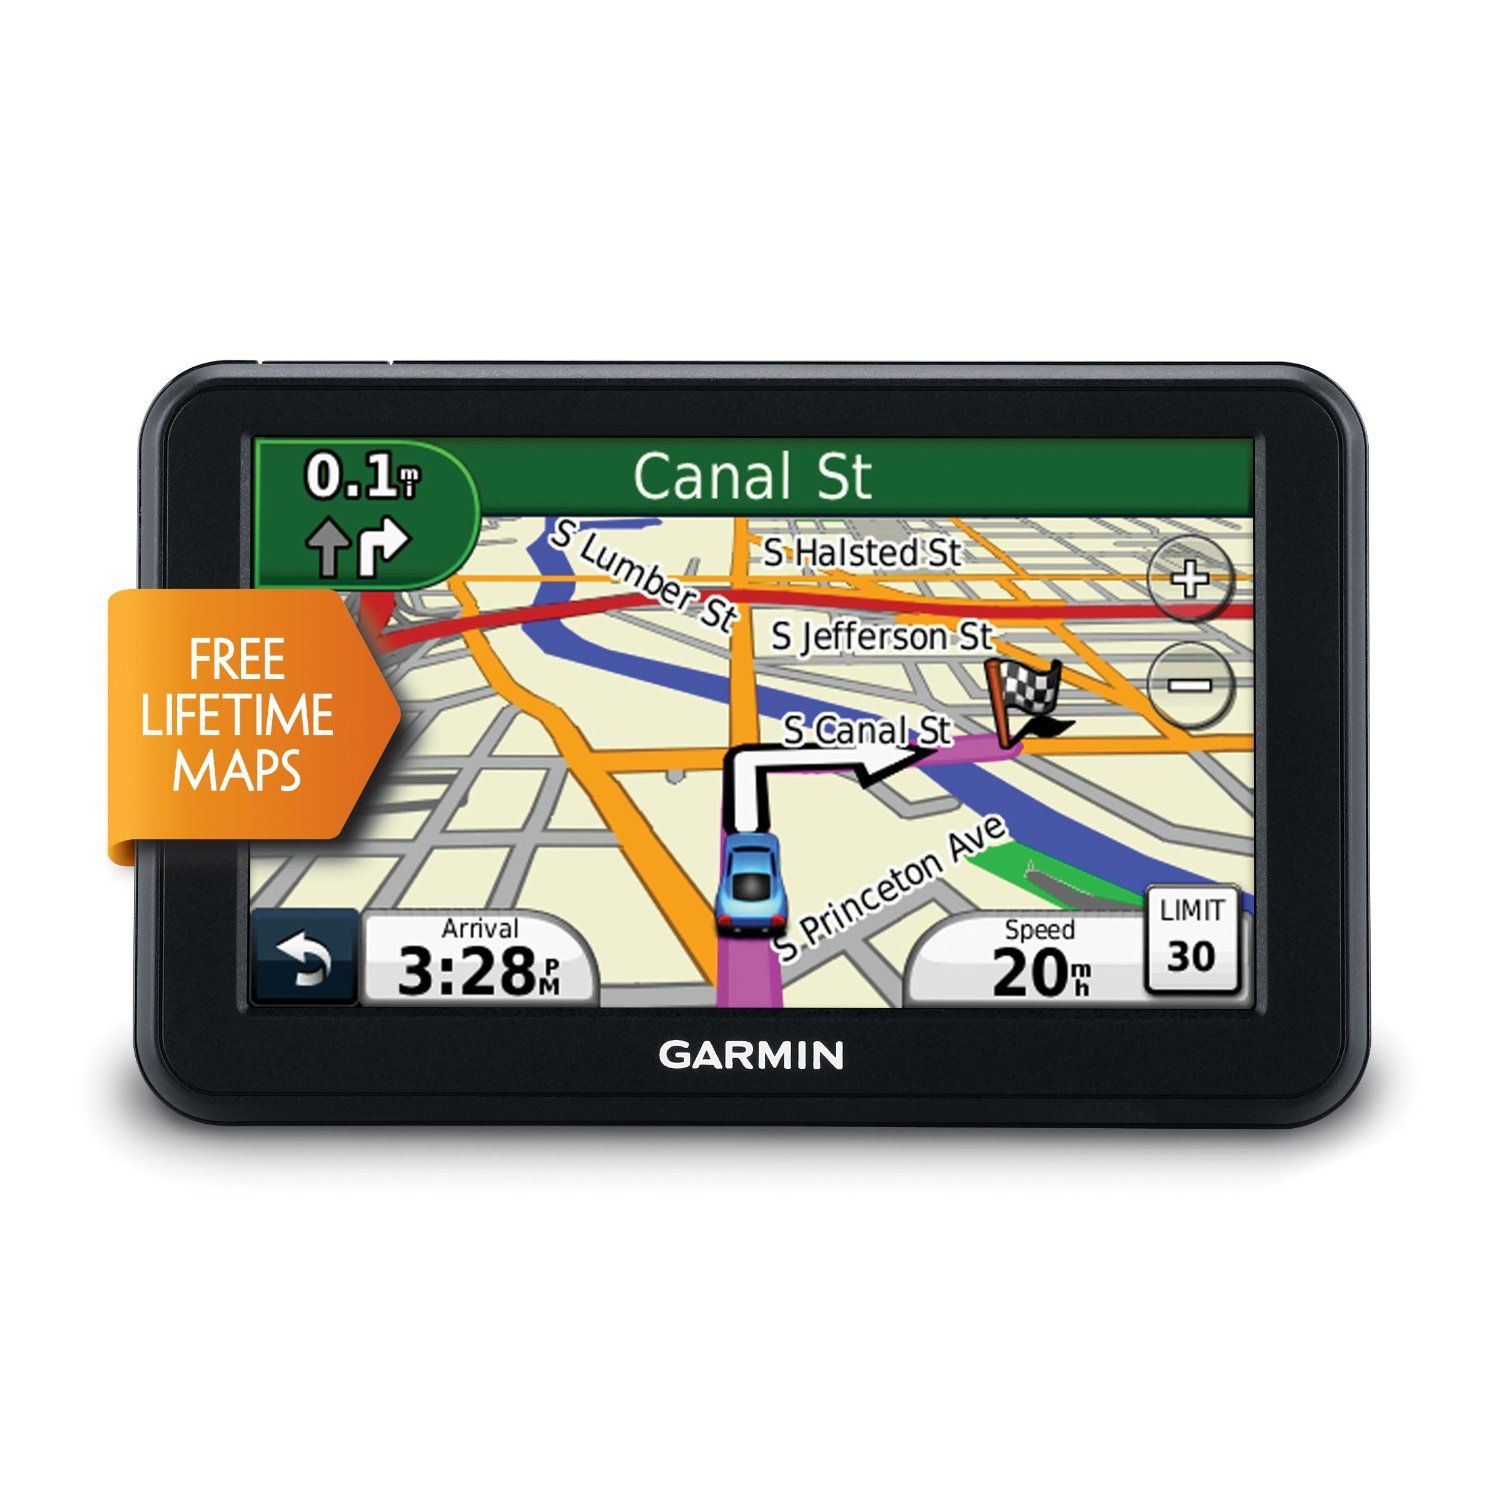 Garmin Nüvi LM Inch Portable GPS Navigator With Lifetime Maps - Update garmin nuvi 50lm